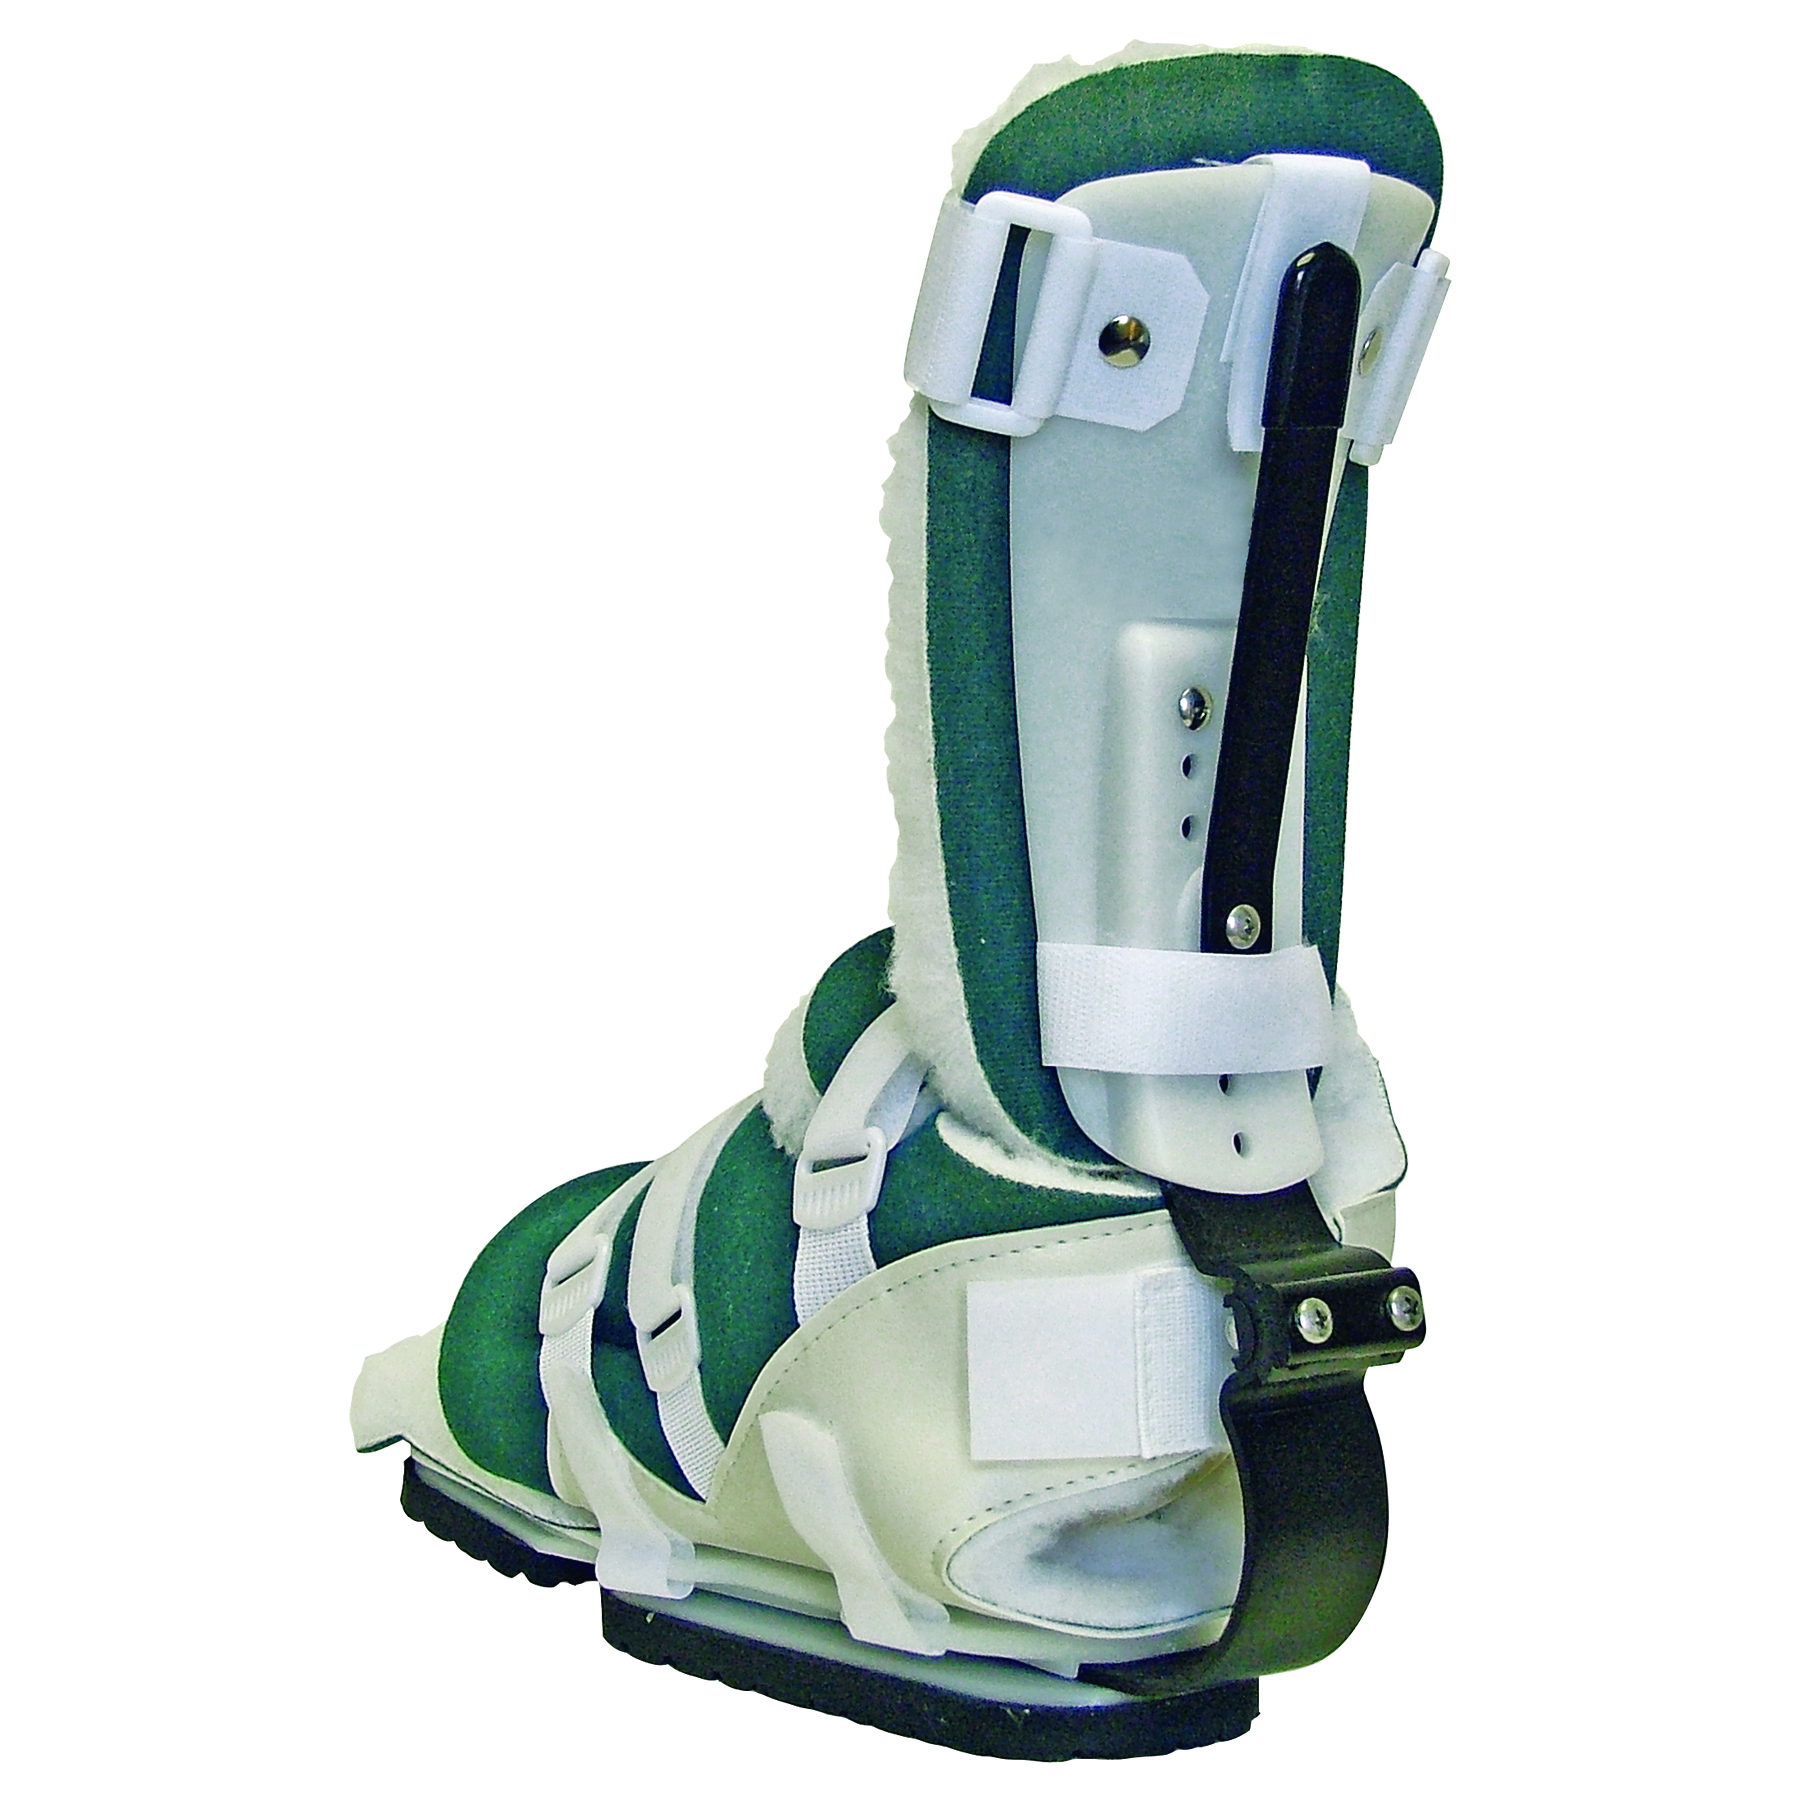 The 652SKG featuring easily adjustment of dorsiflexion angles